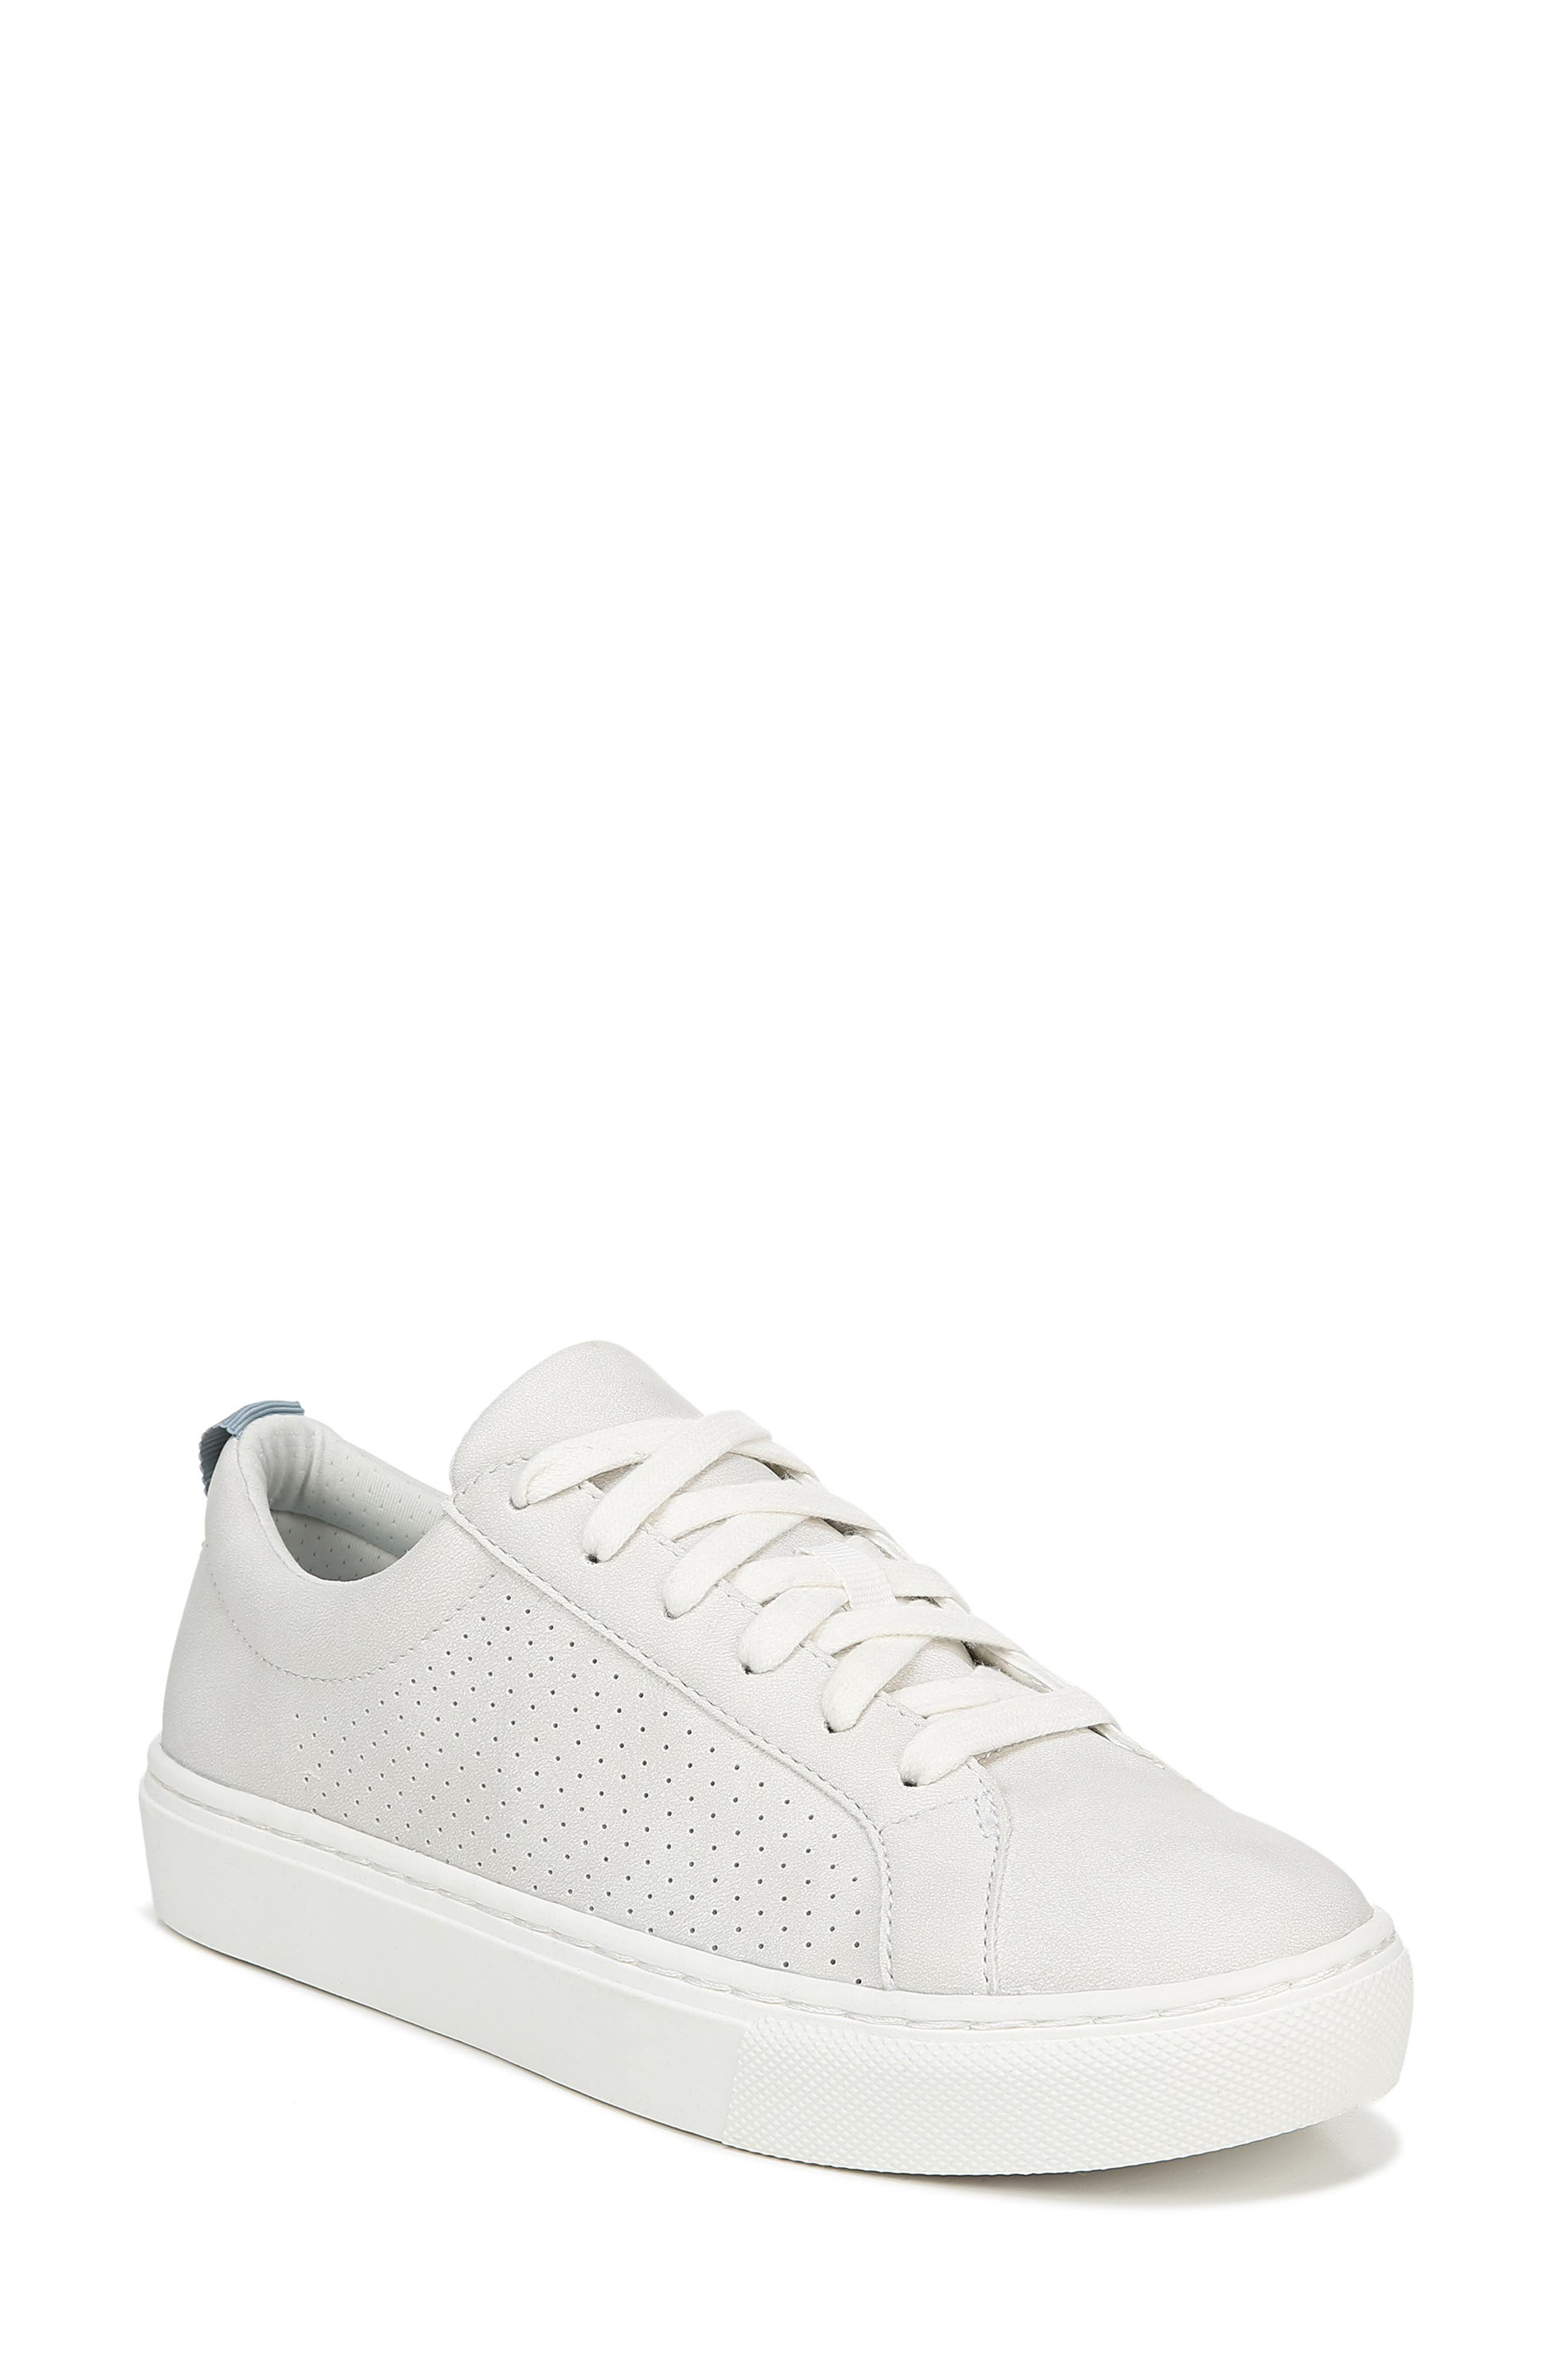 DR. SCHOLL'S, No Bad Vibes Sneaker, Main thumbnail 1, color, WHITE FAUX LEATHER